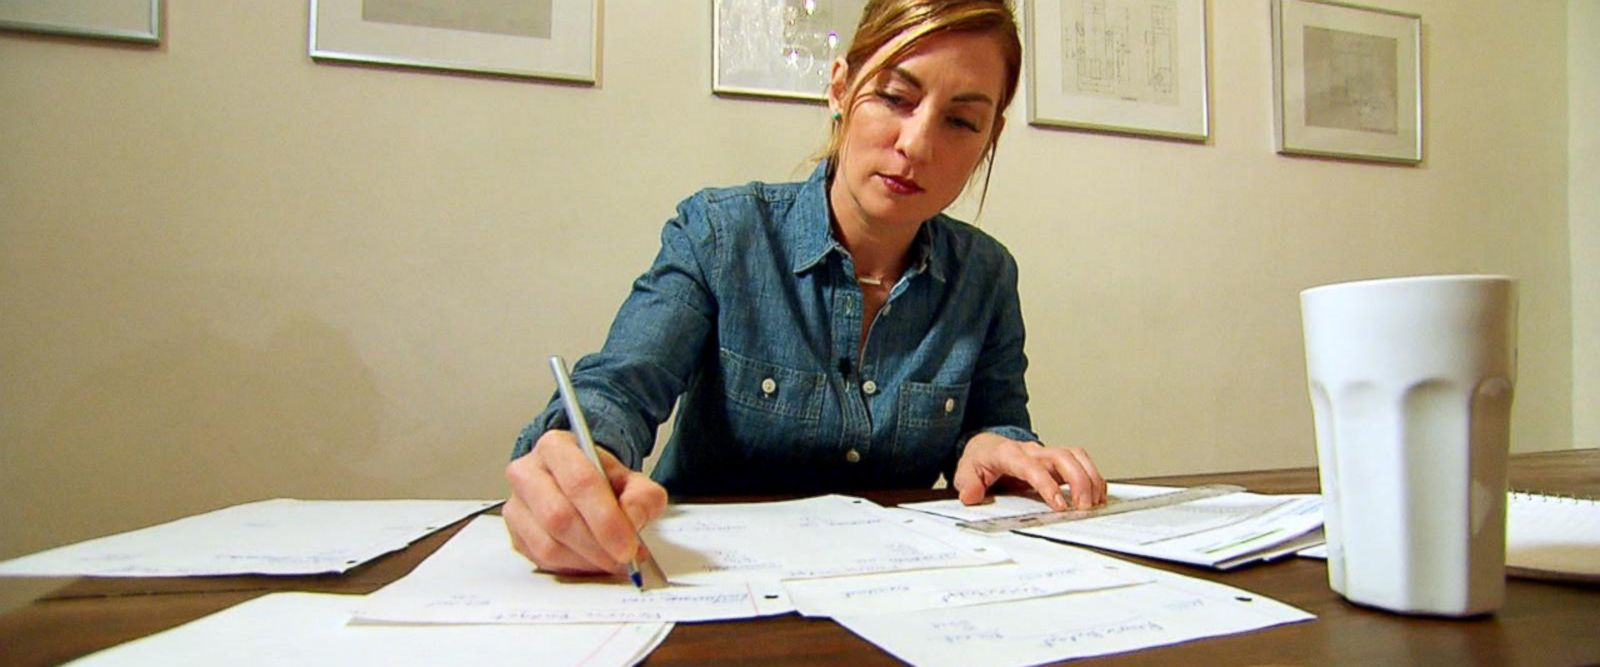 VIDEO: How 1 woman paid off $24,000 in debt in 15 months